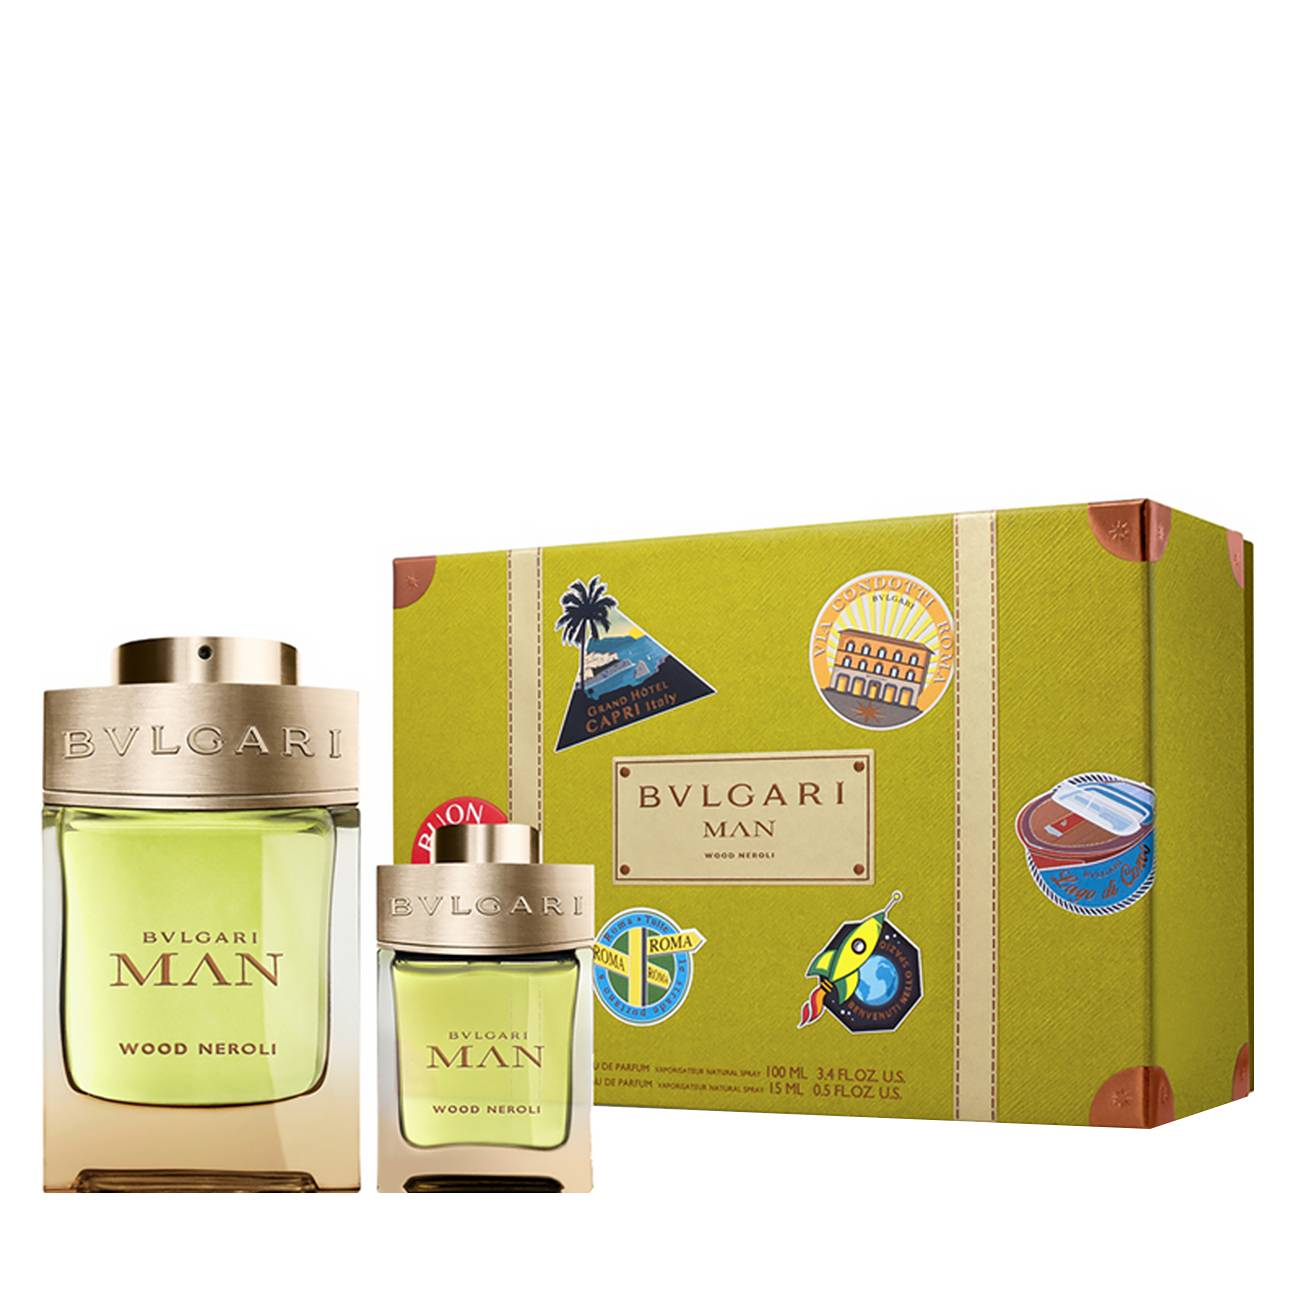 Man Wood Neroli Set 115ml